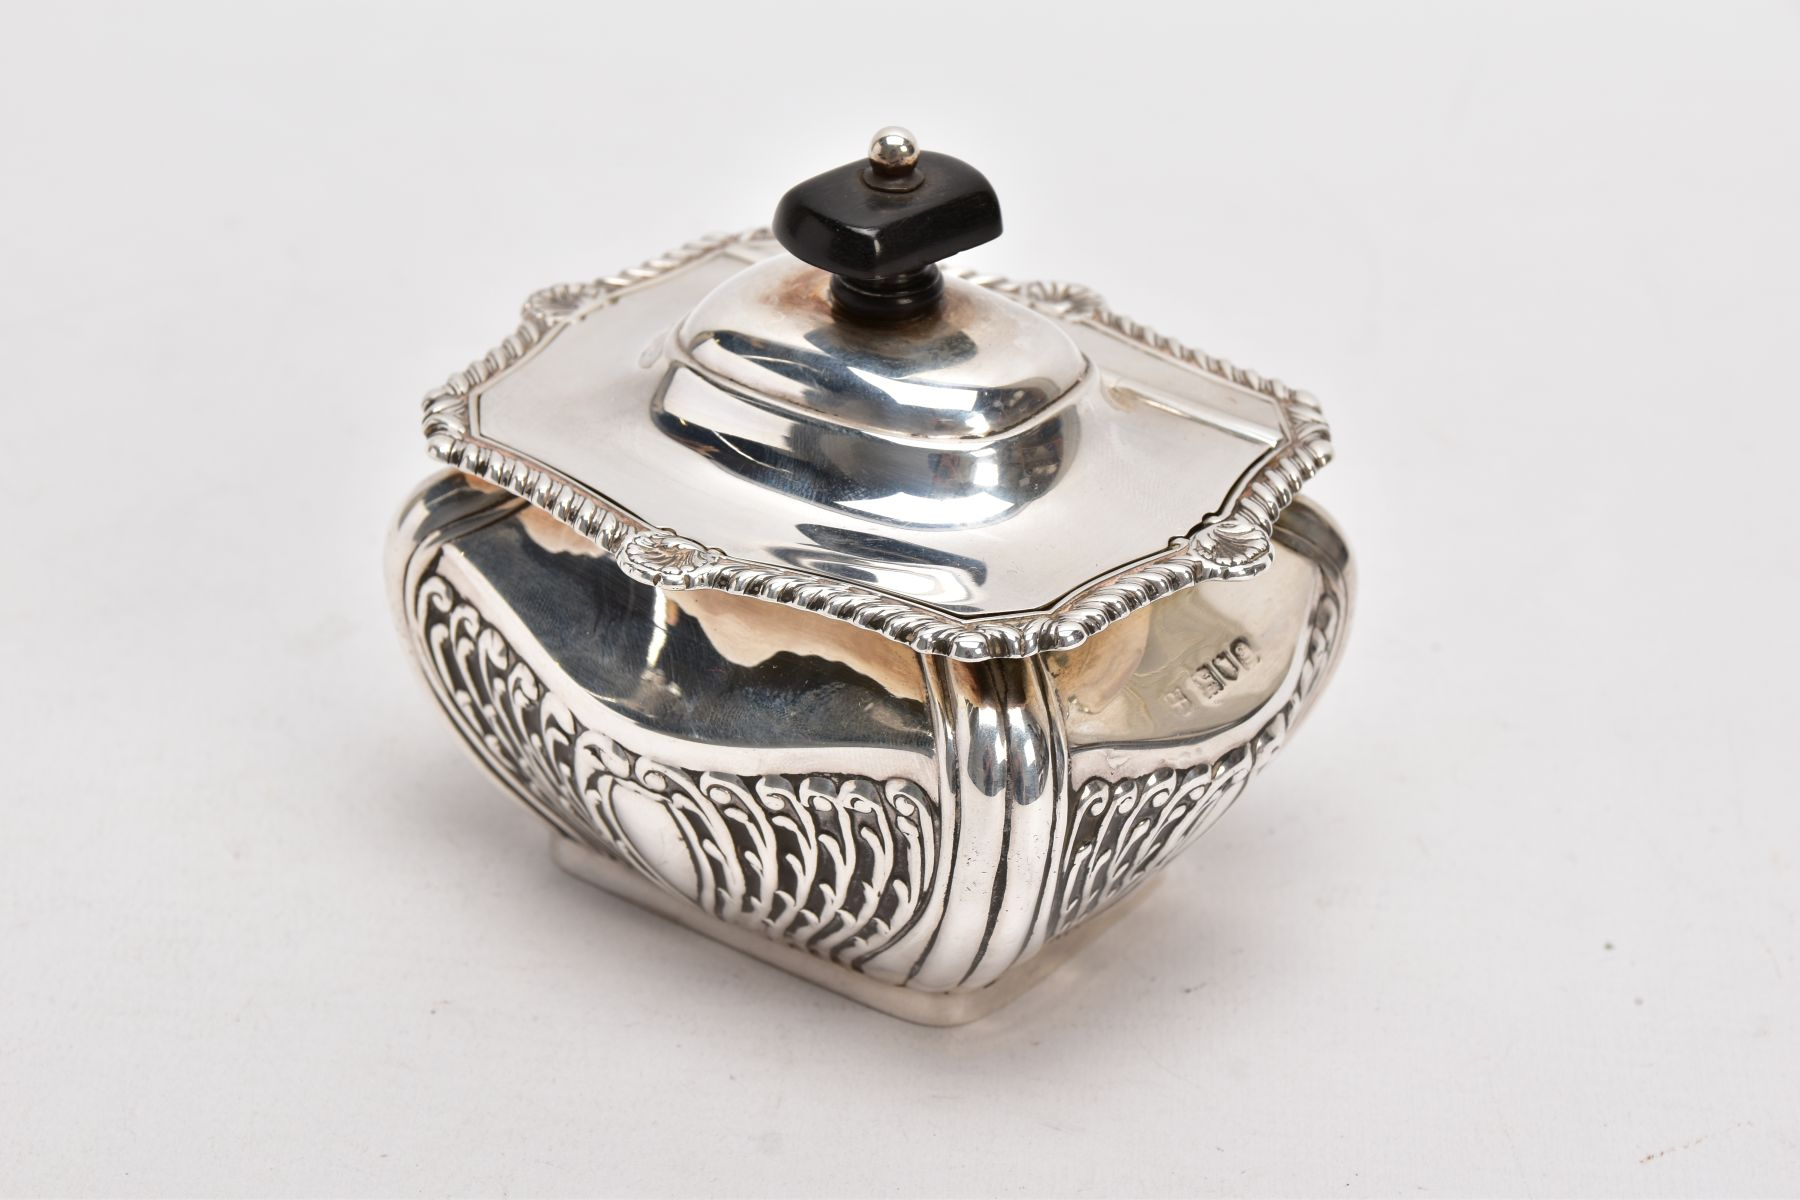 AN EDWARDIAN SILVER TEA CADDY, bomb shaped sucrier with hinged cover, gadrooned and shell cast